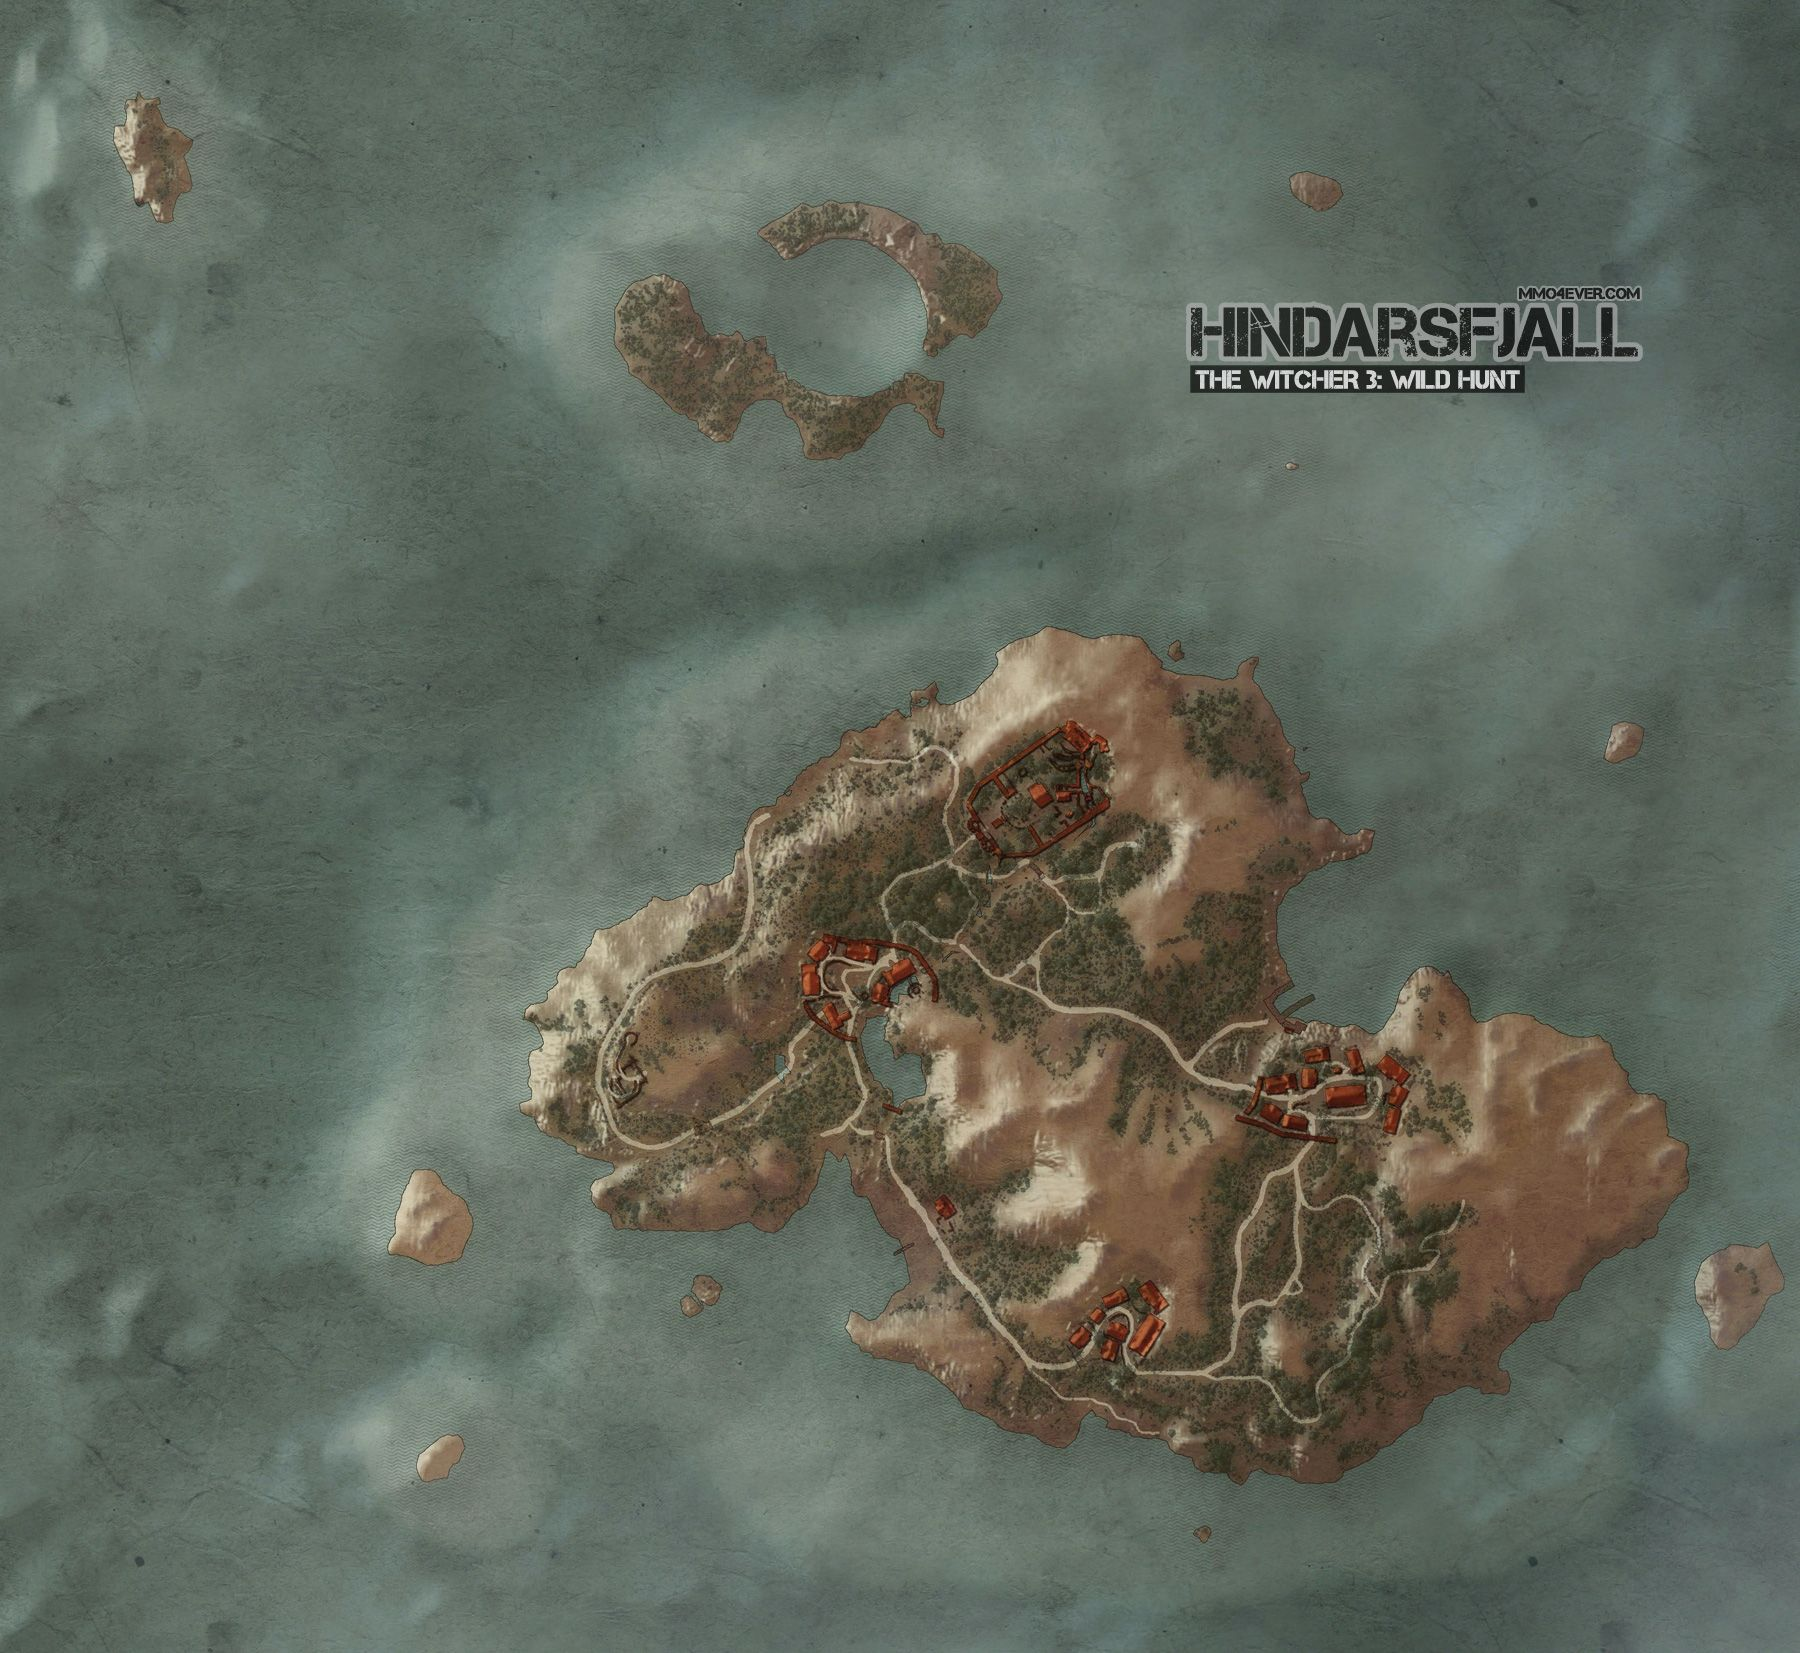 Hindarsfjall Map | The Witcher 3: Wild Hunt Maps & Quests